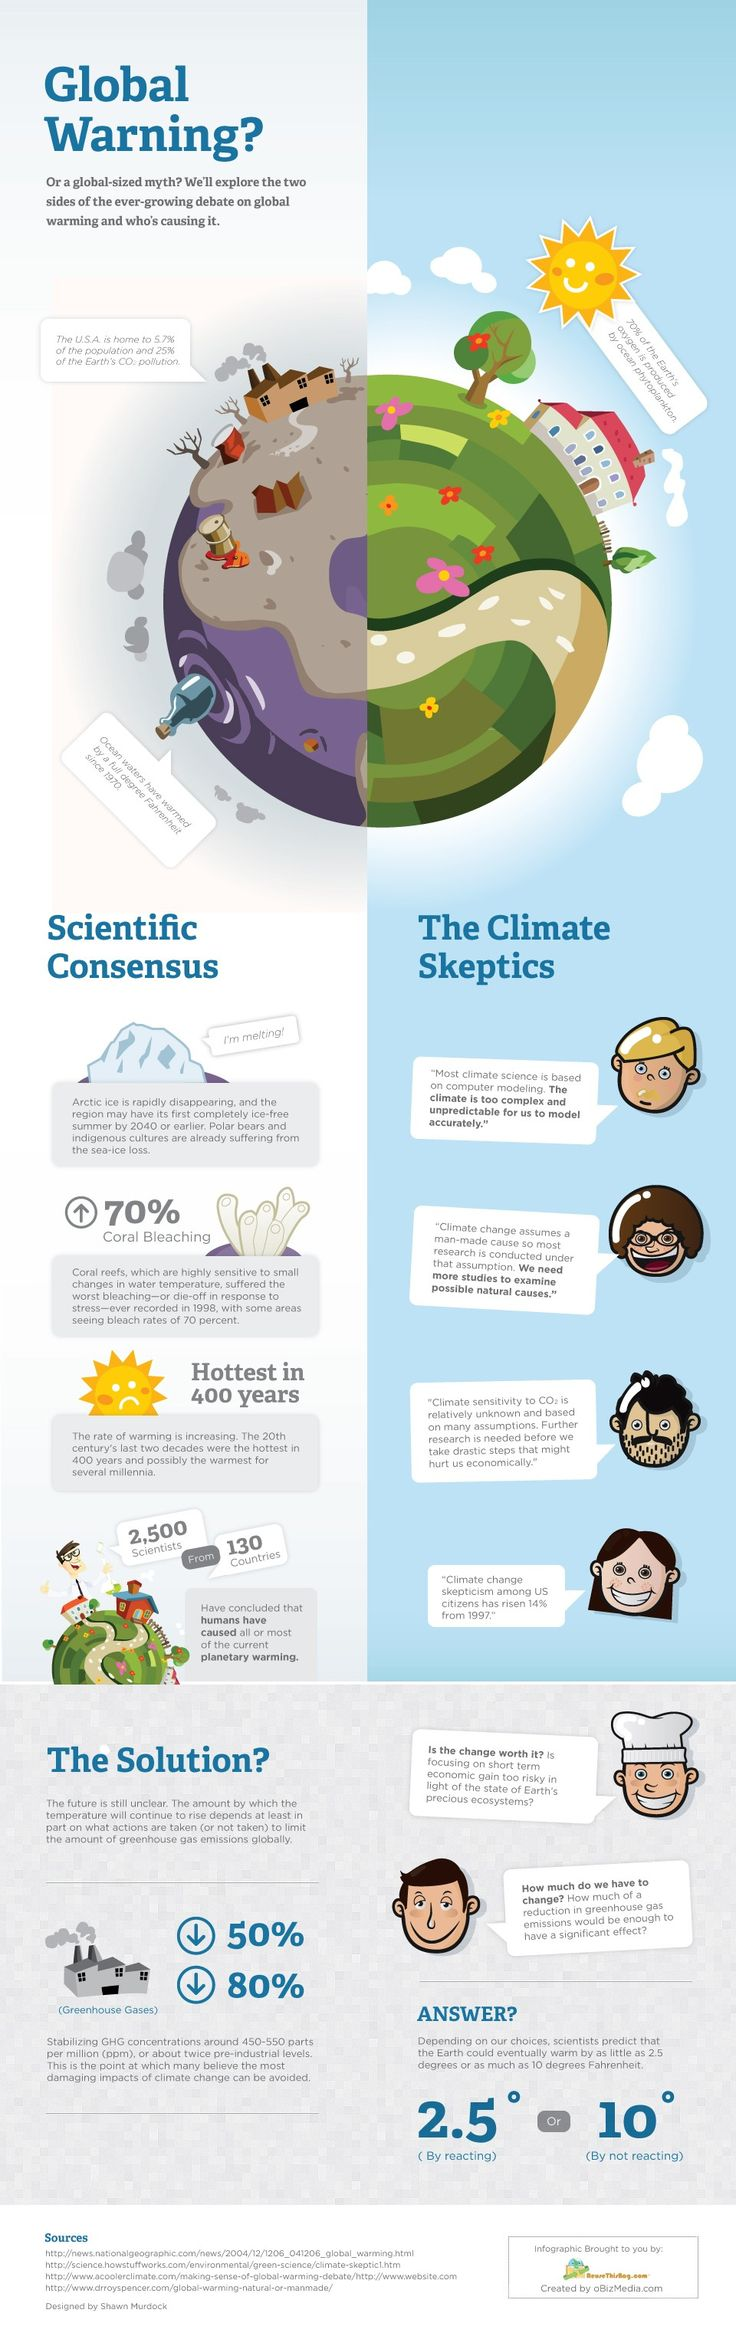 The poster will help you to make your own conclusion about global warming.